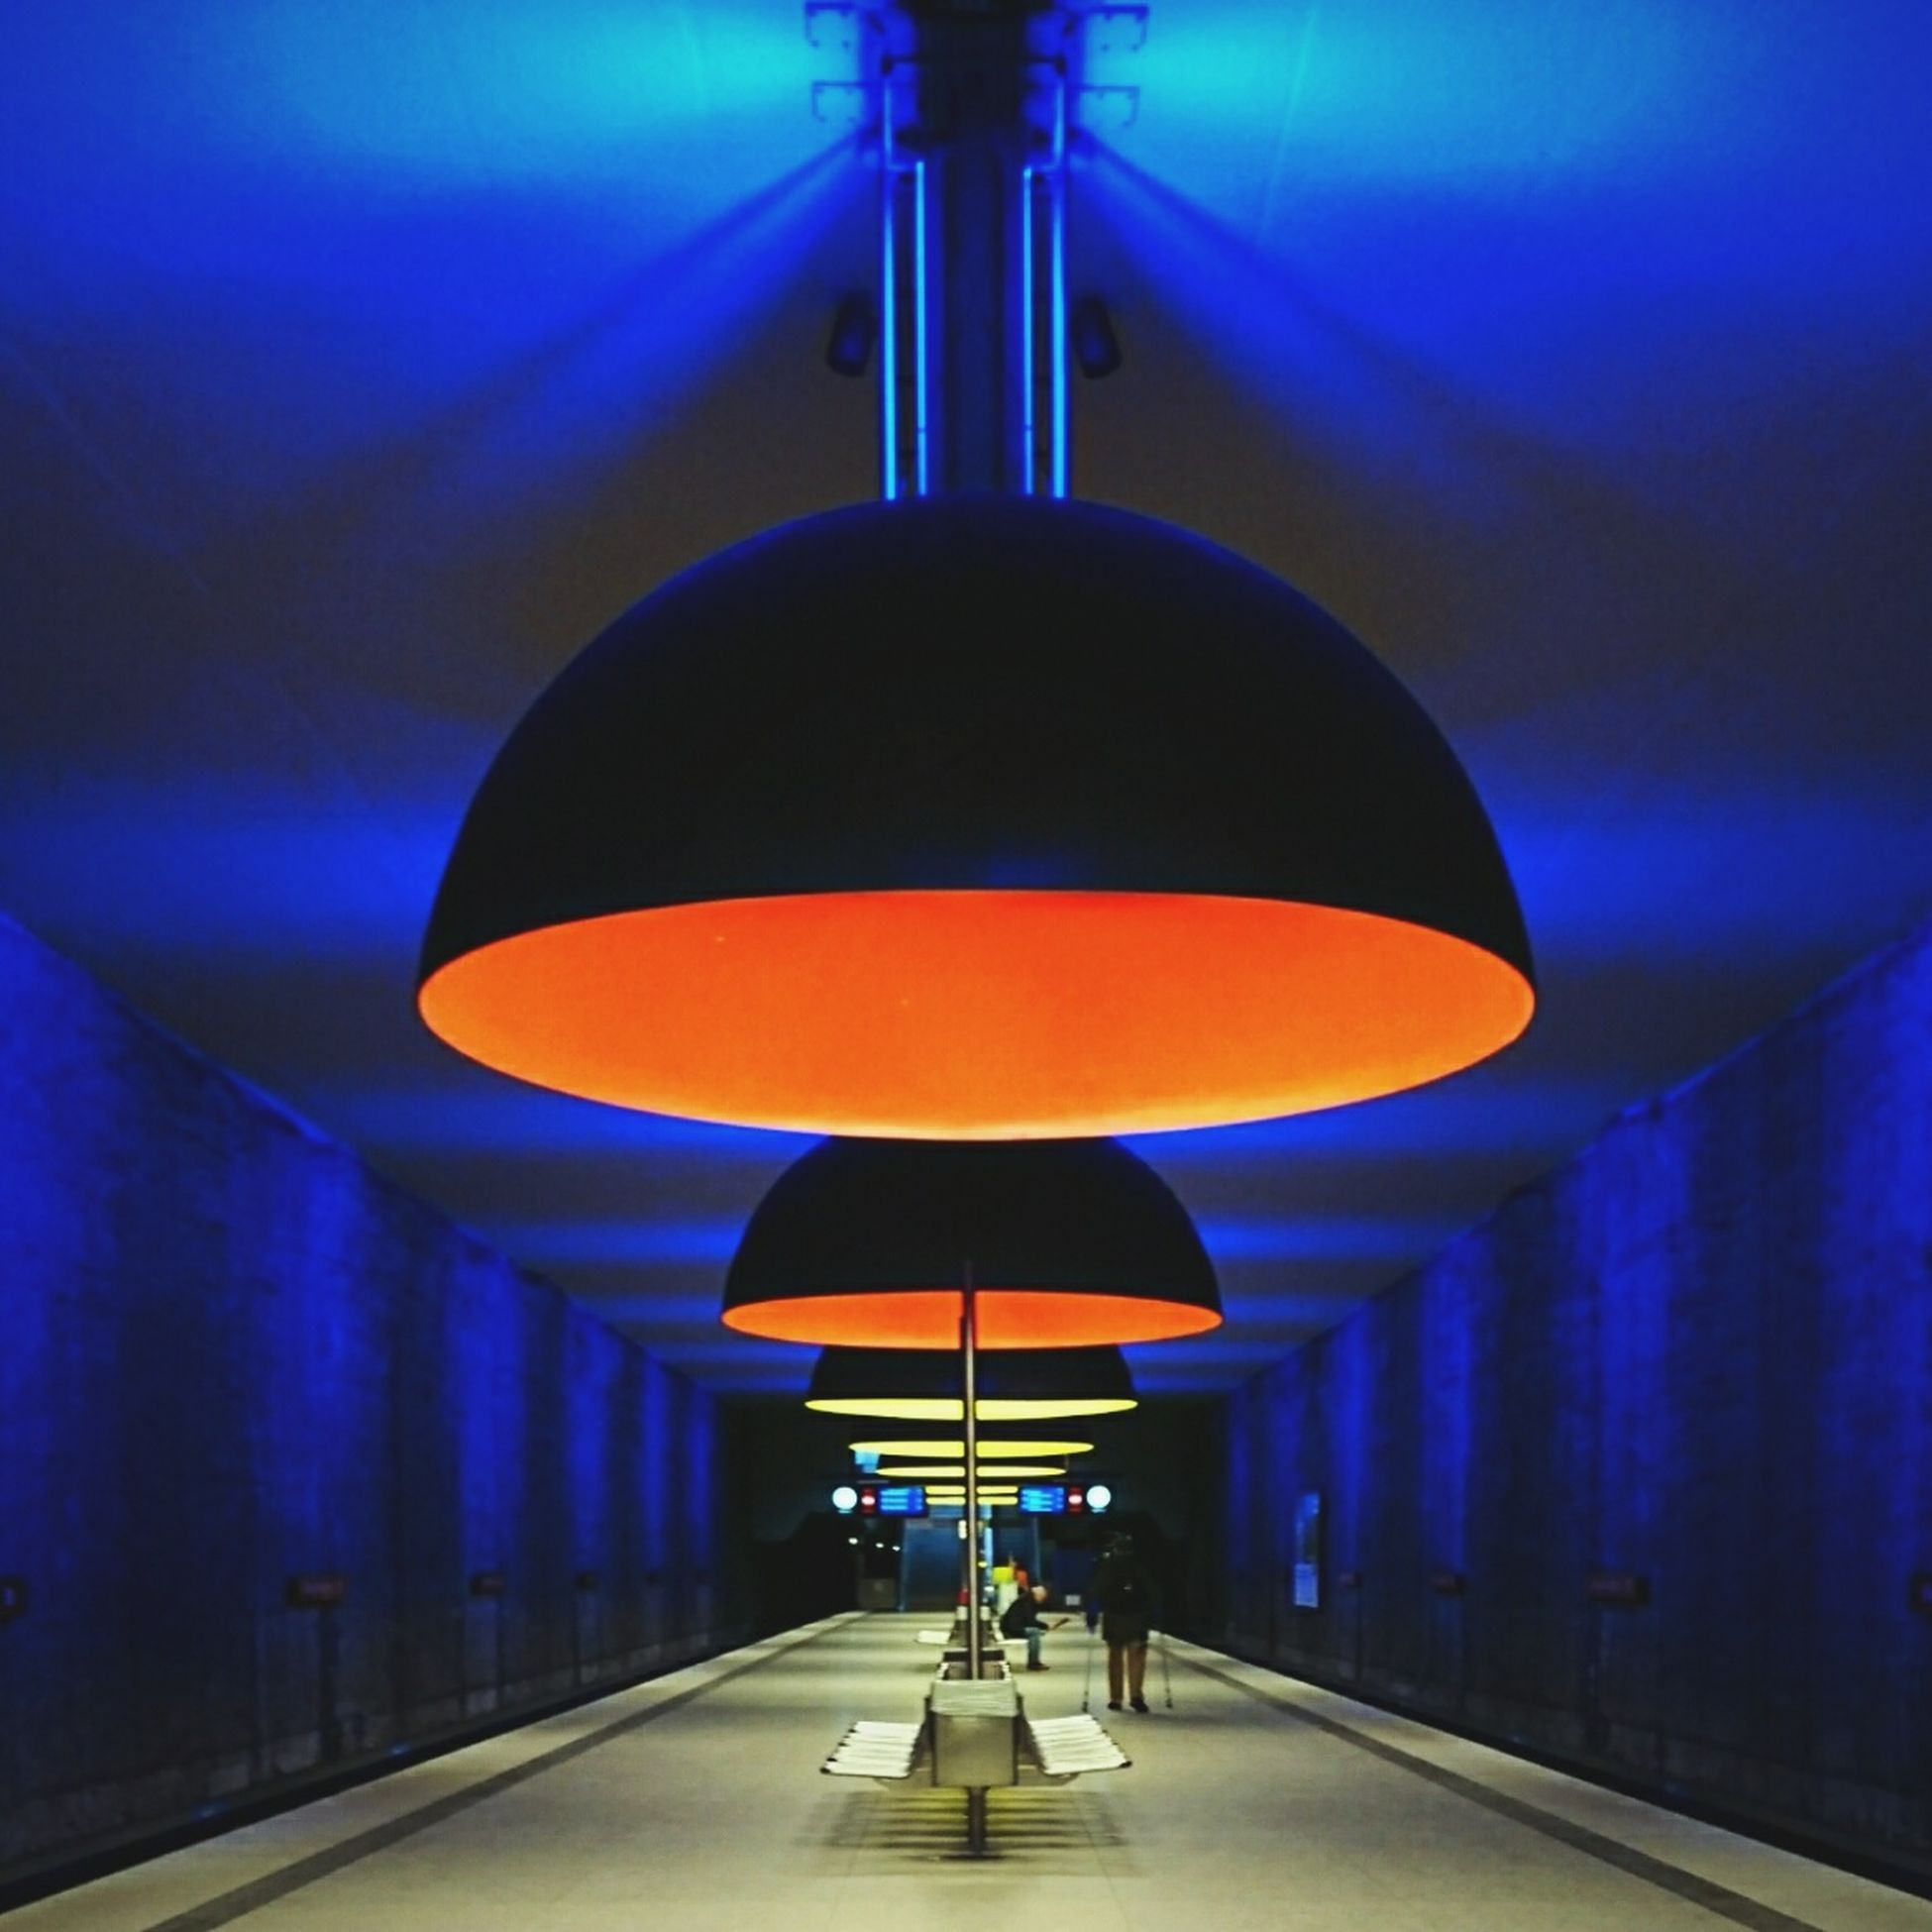 Colored Version of previous picture... No People Architecture München Illuminated Munich Transportation Underground Station In Indoors Public TransportationPublic Transportation Built Structure Travel Destinations Modern Architecture Shootermag Mobilephotography Sonyxperia Xz